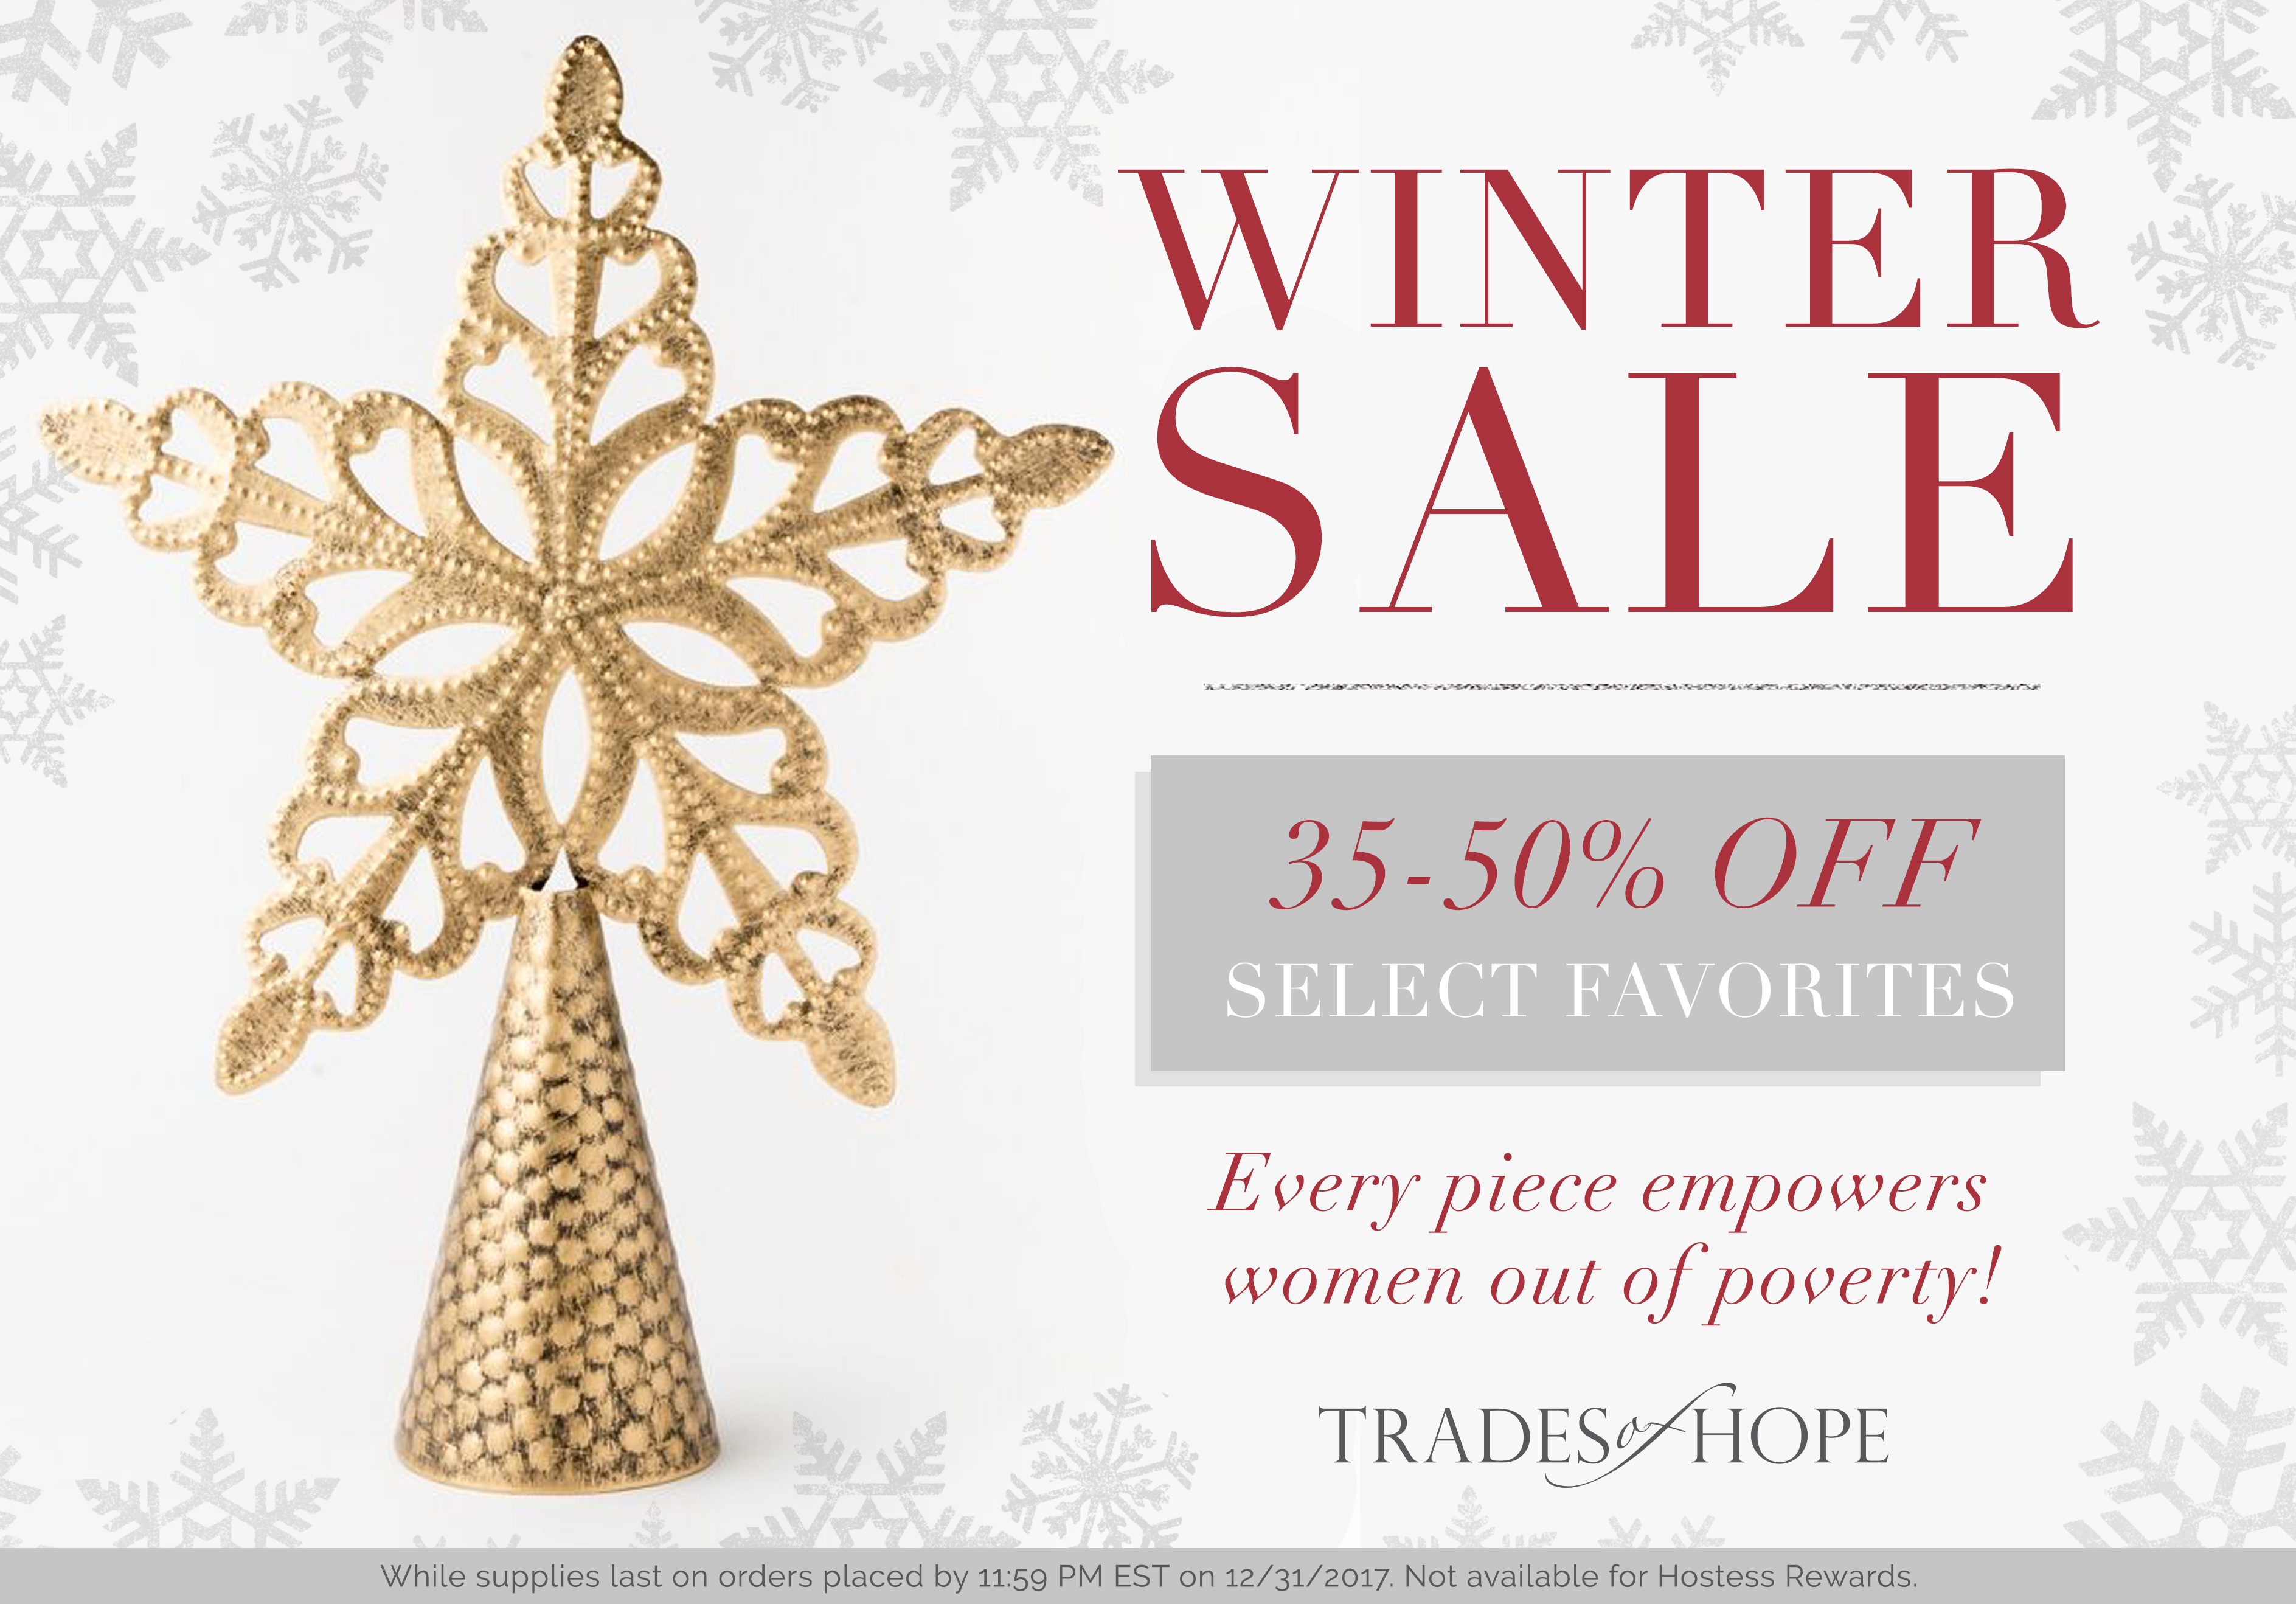 Trades of Hope Christmas Sale!